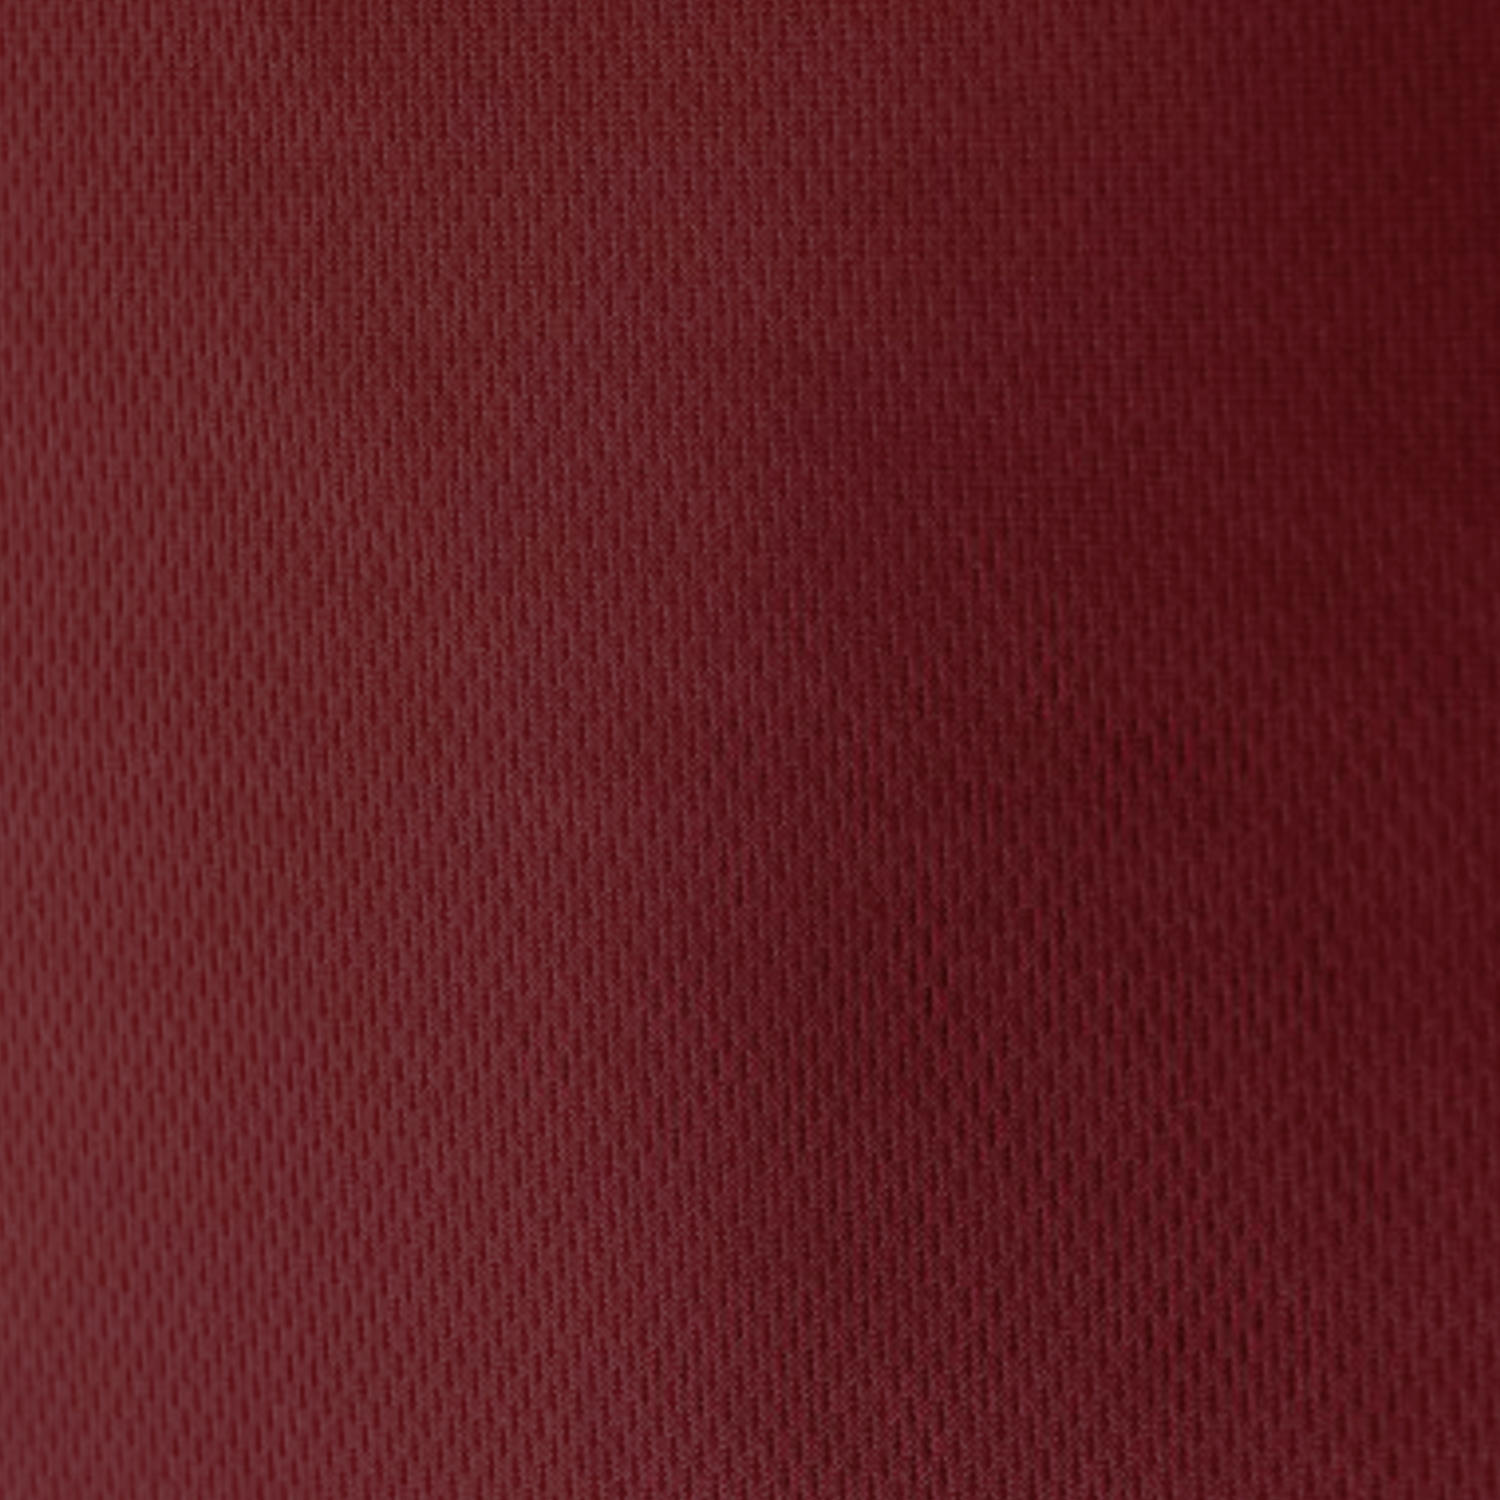 Burgundy Flat Back Dimple Mesh Fabric